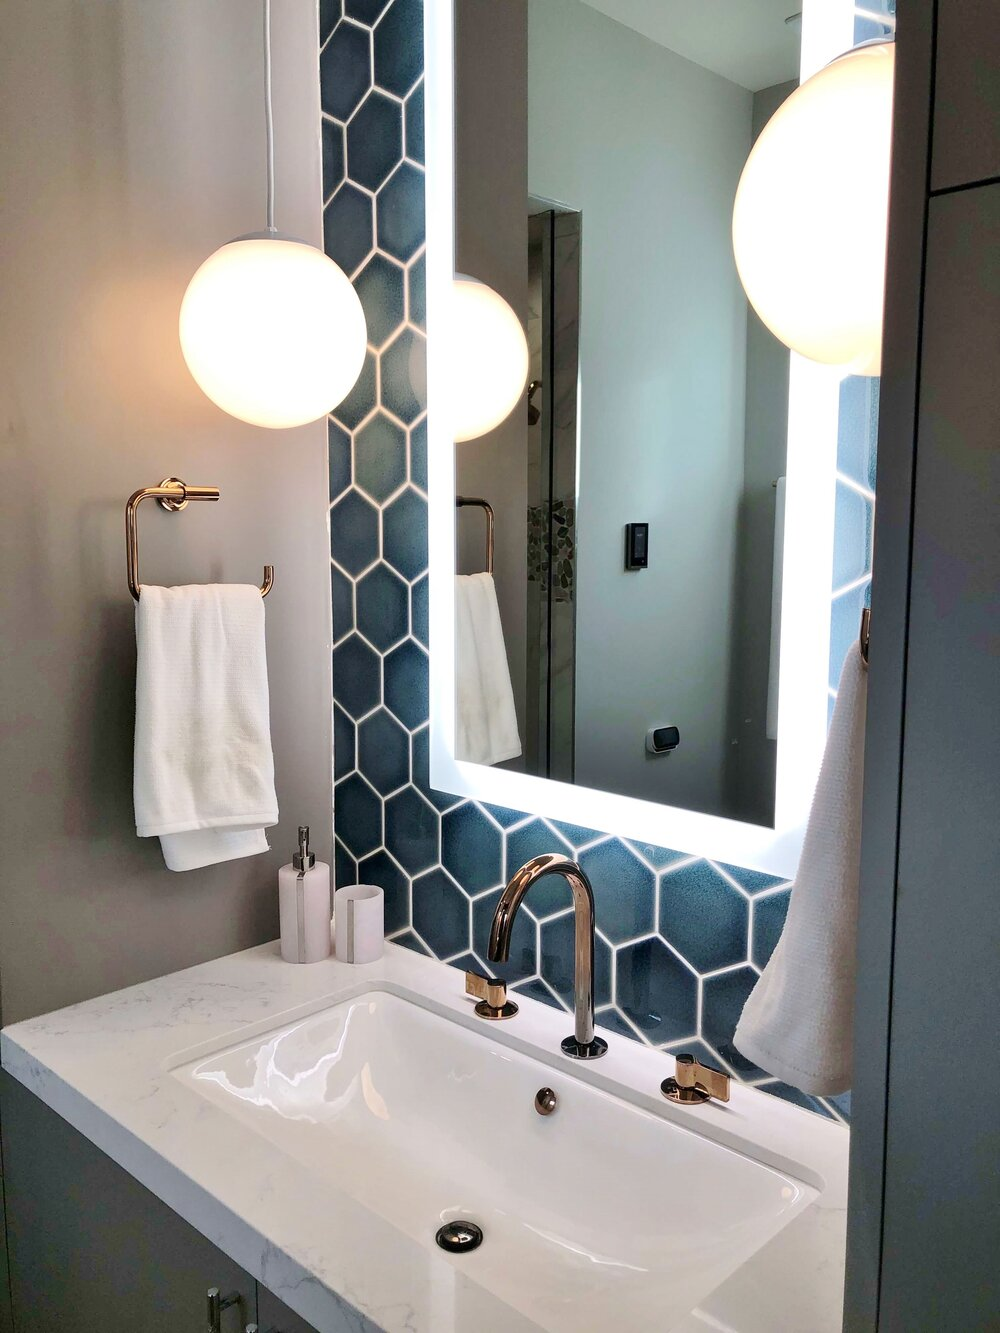 Pendant lighting, tiled back wall with floating, lit mirror in the upstairs bathroom. The New American Remodel TNAR | #remodeling #remodel #bathroomdesign